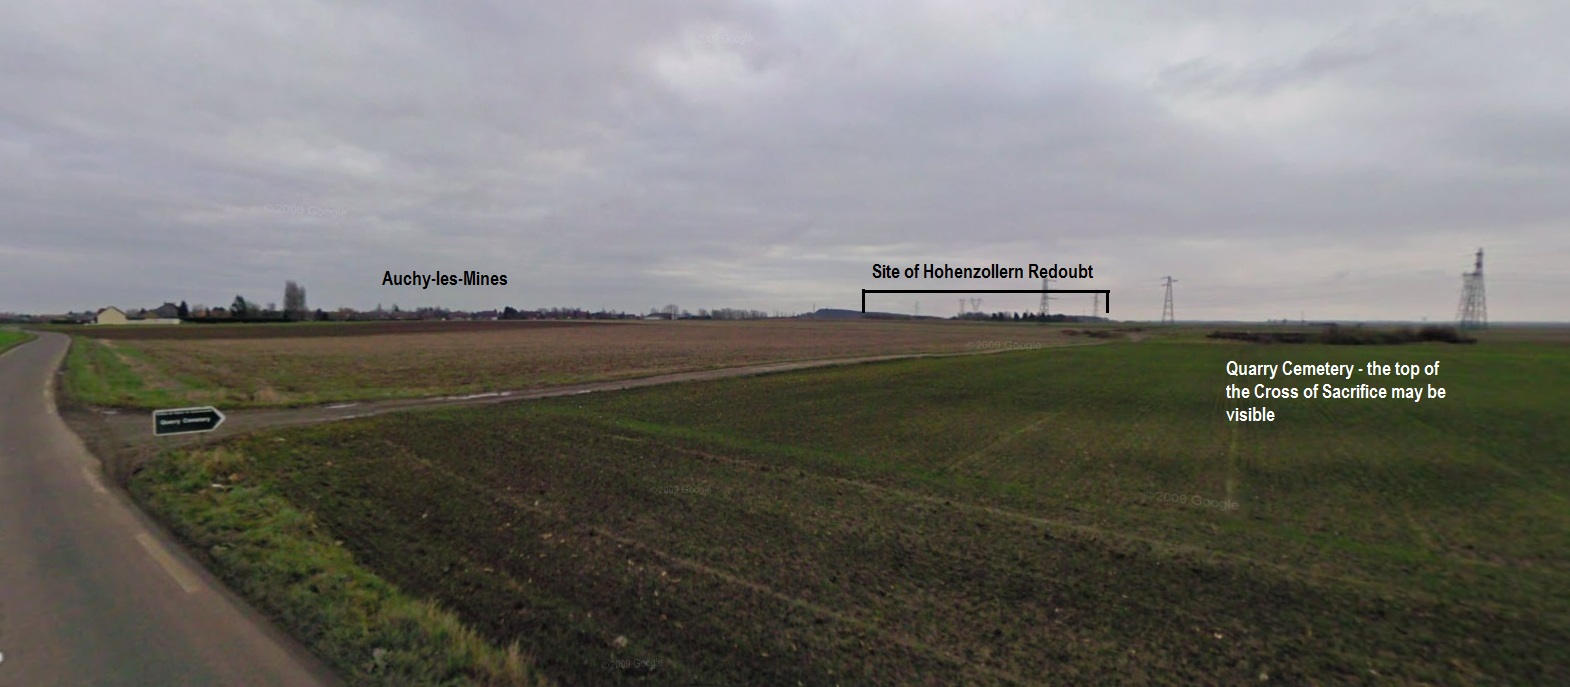 Google Street View from Vermelles – Auchy road towards Quarry Cemetery and the Hohenzollern Redoubt